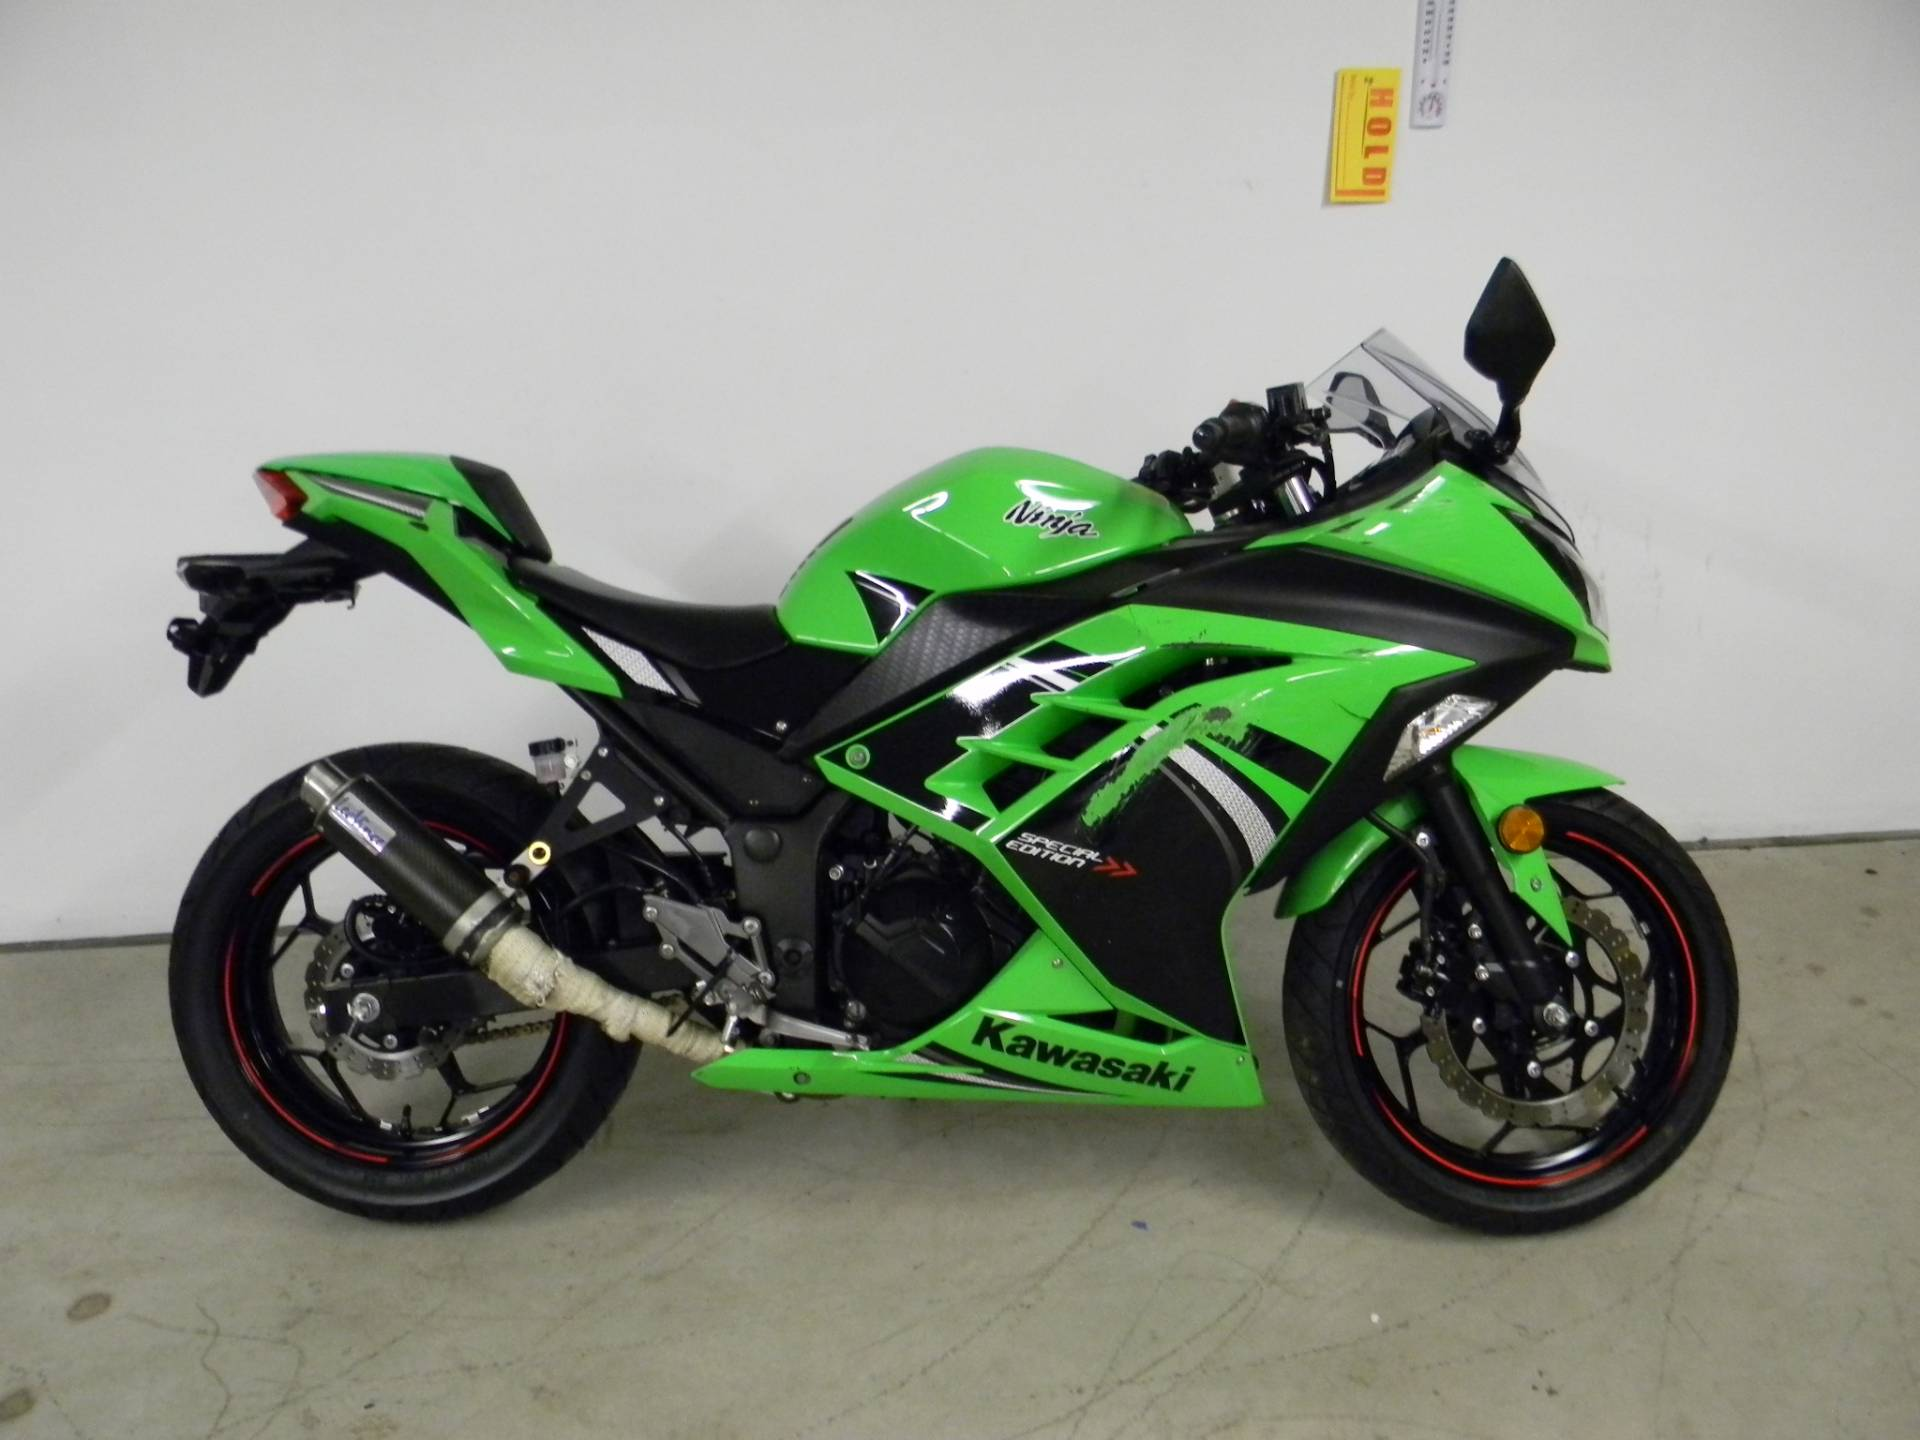 kawasaki ninja 300 green 2014 images galleries with a bite. Black Bedroom Furniture Sets. Home Design Ideas